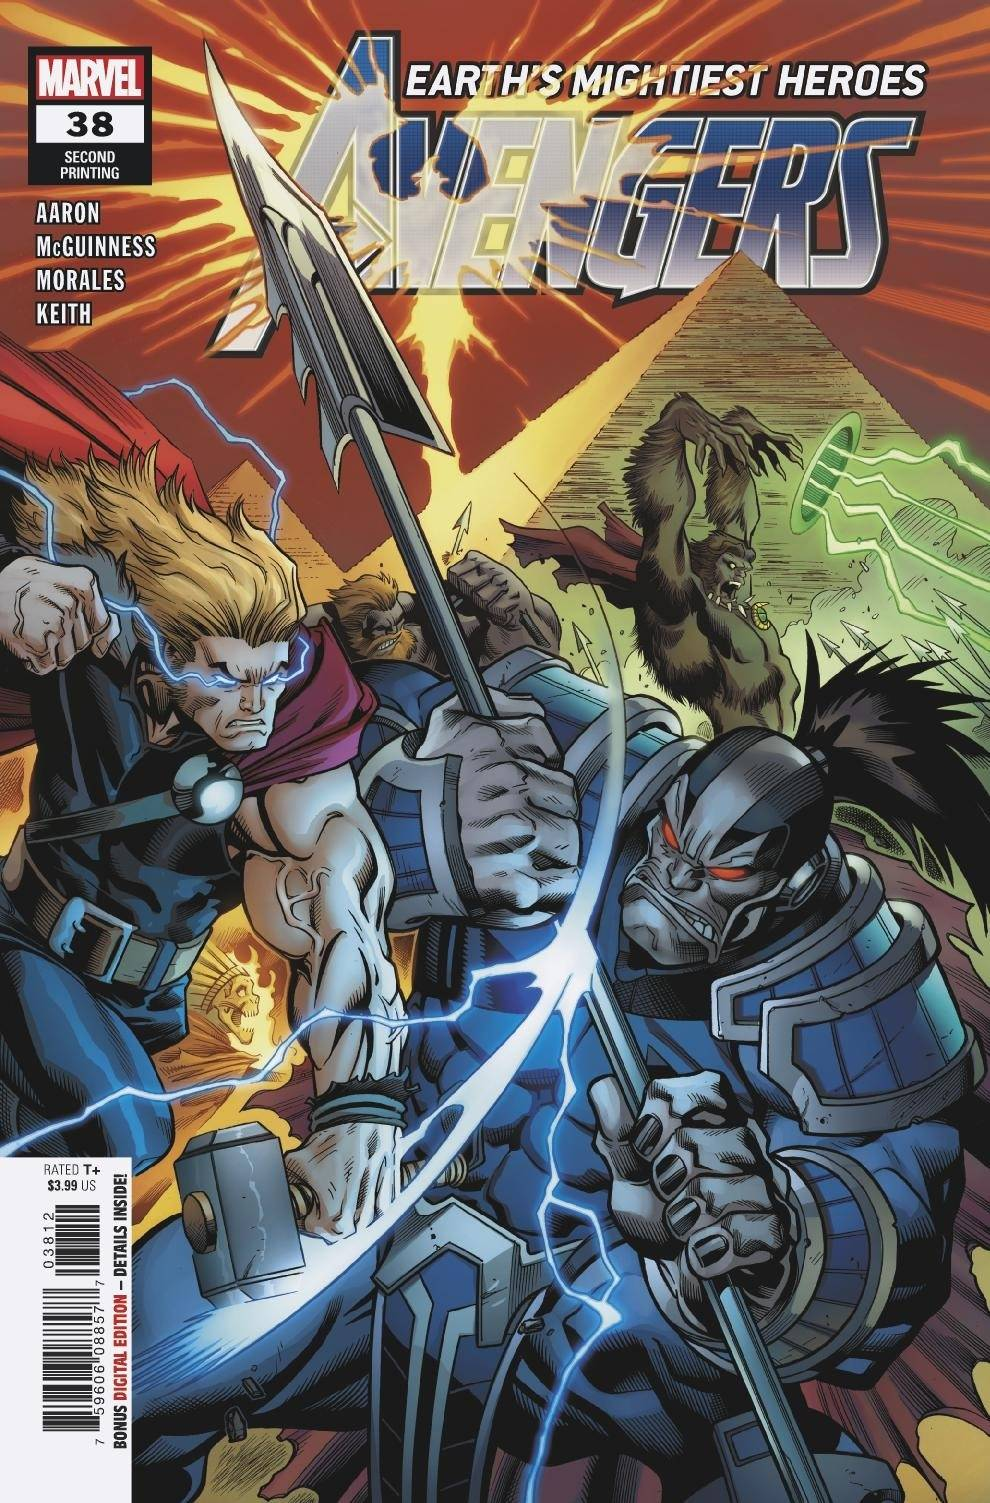 STL178671 ComicList: Marvel Comics New Releases for 12/30/2020